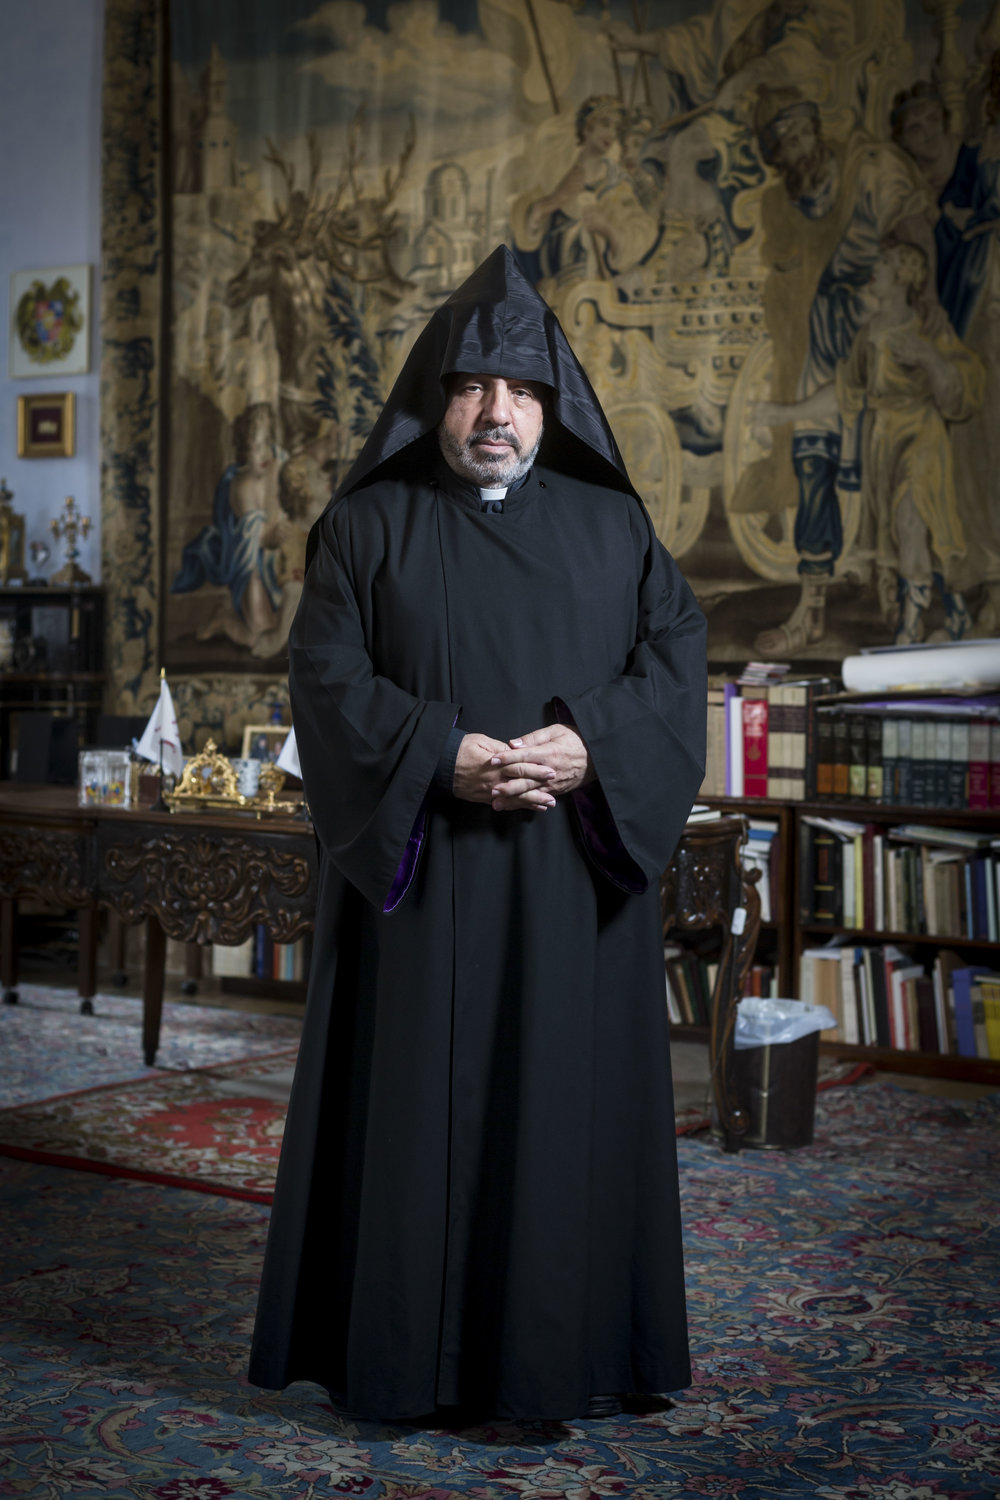 Portrait of Archbishop Nourhan Manougian, Patriarch of the Armenian Orthodox Patriarchate of Jerusalem in Jerusalem's Old City